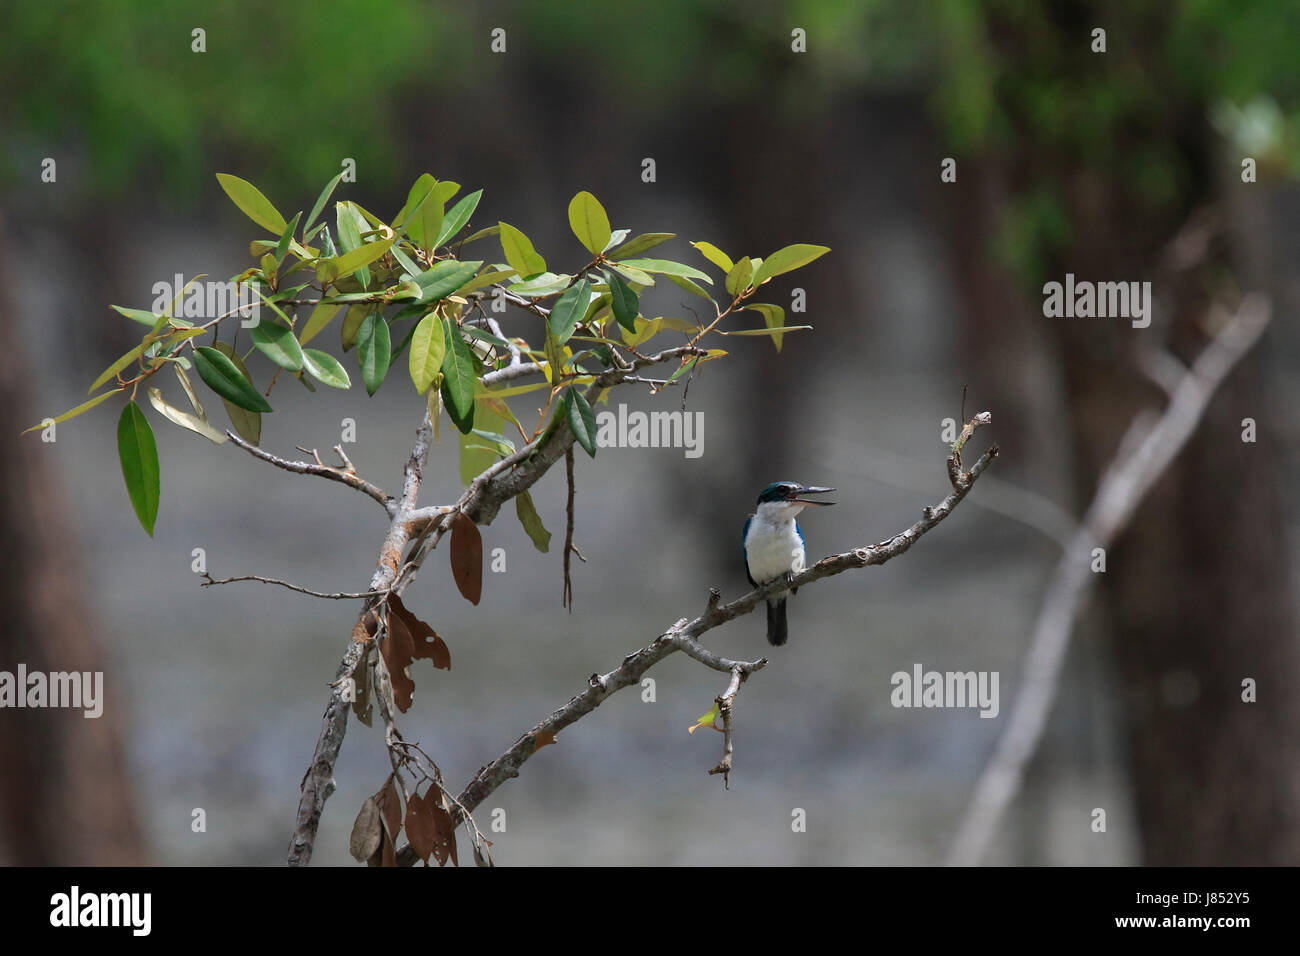 Collared kingfisher (Todiramphus chloris) in the world largest mangrove forest Sundarbans, famous for the Royal Stock Photo